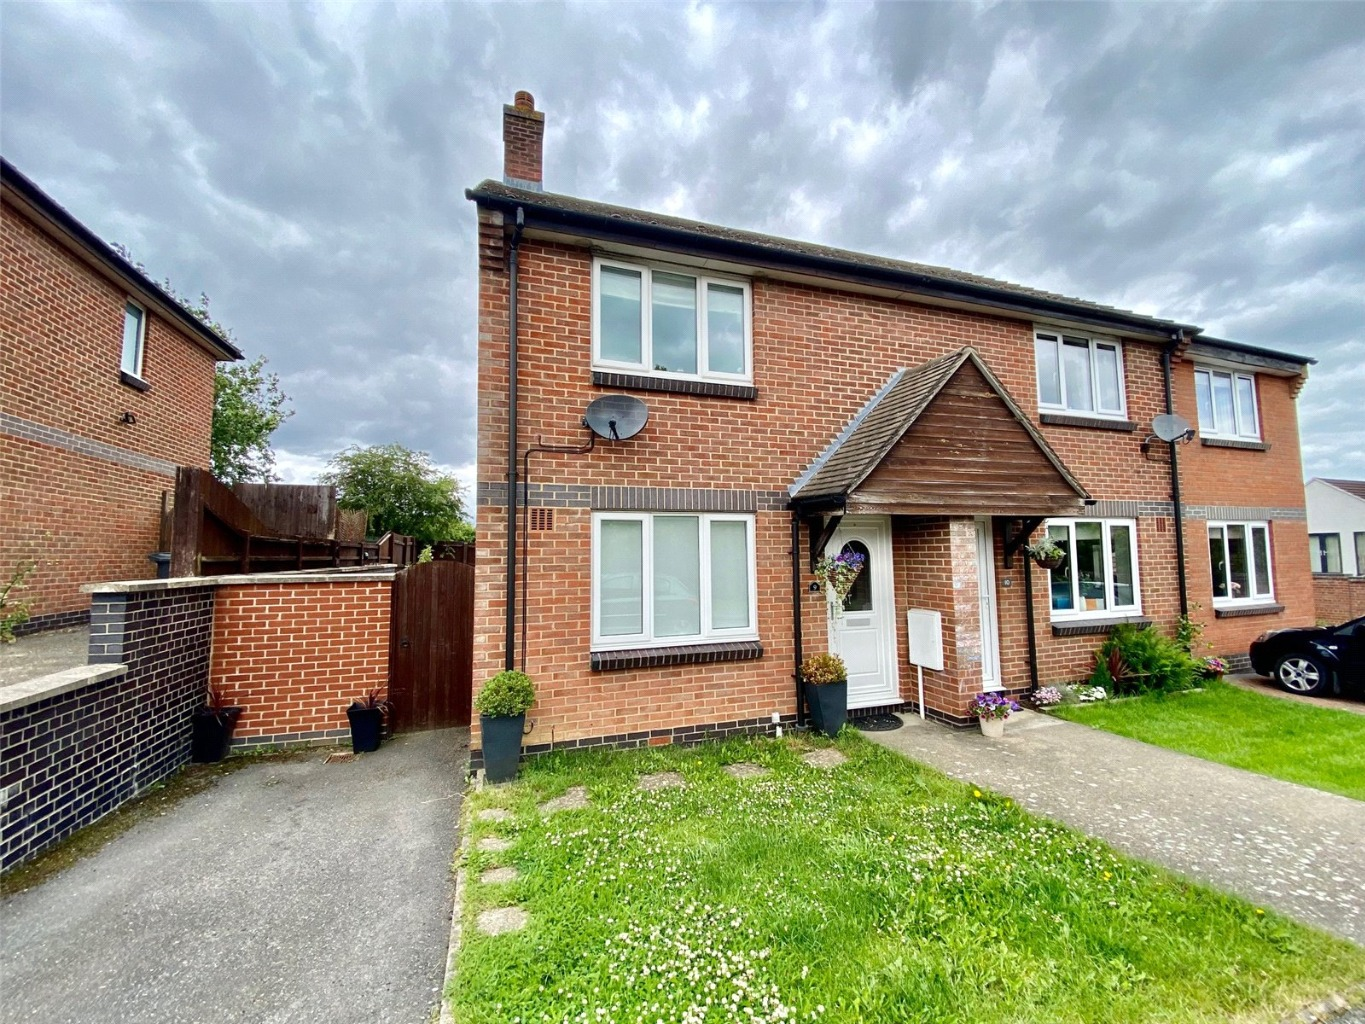 2 bed semi-detached house for sale in Field Close, St. Neots - Property Image 1